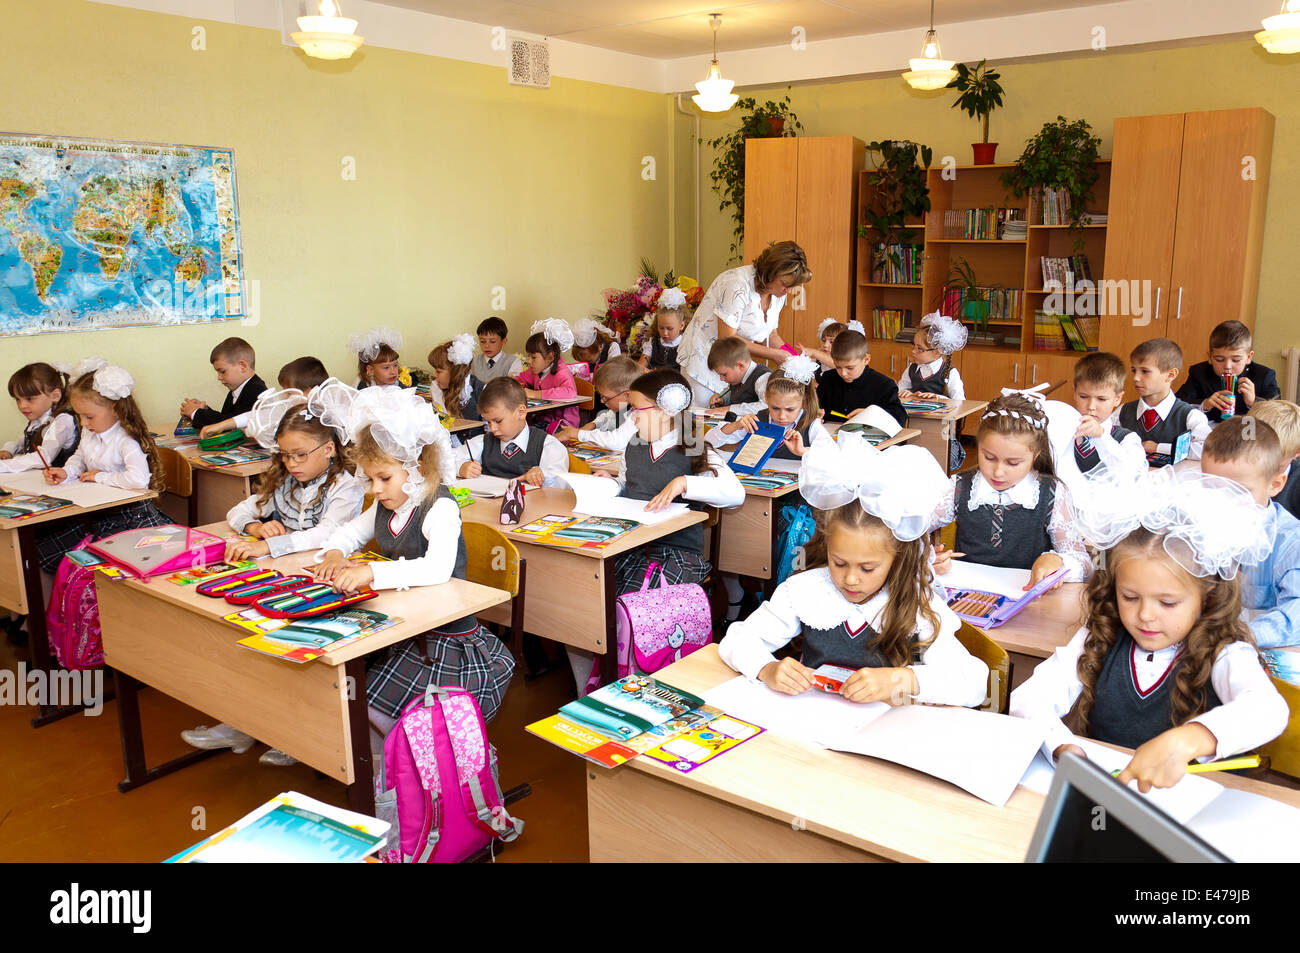 Pictures Of Elementary Classrooms ~ Elementary school students at classroom desks and their